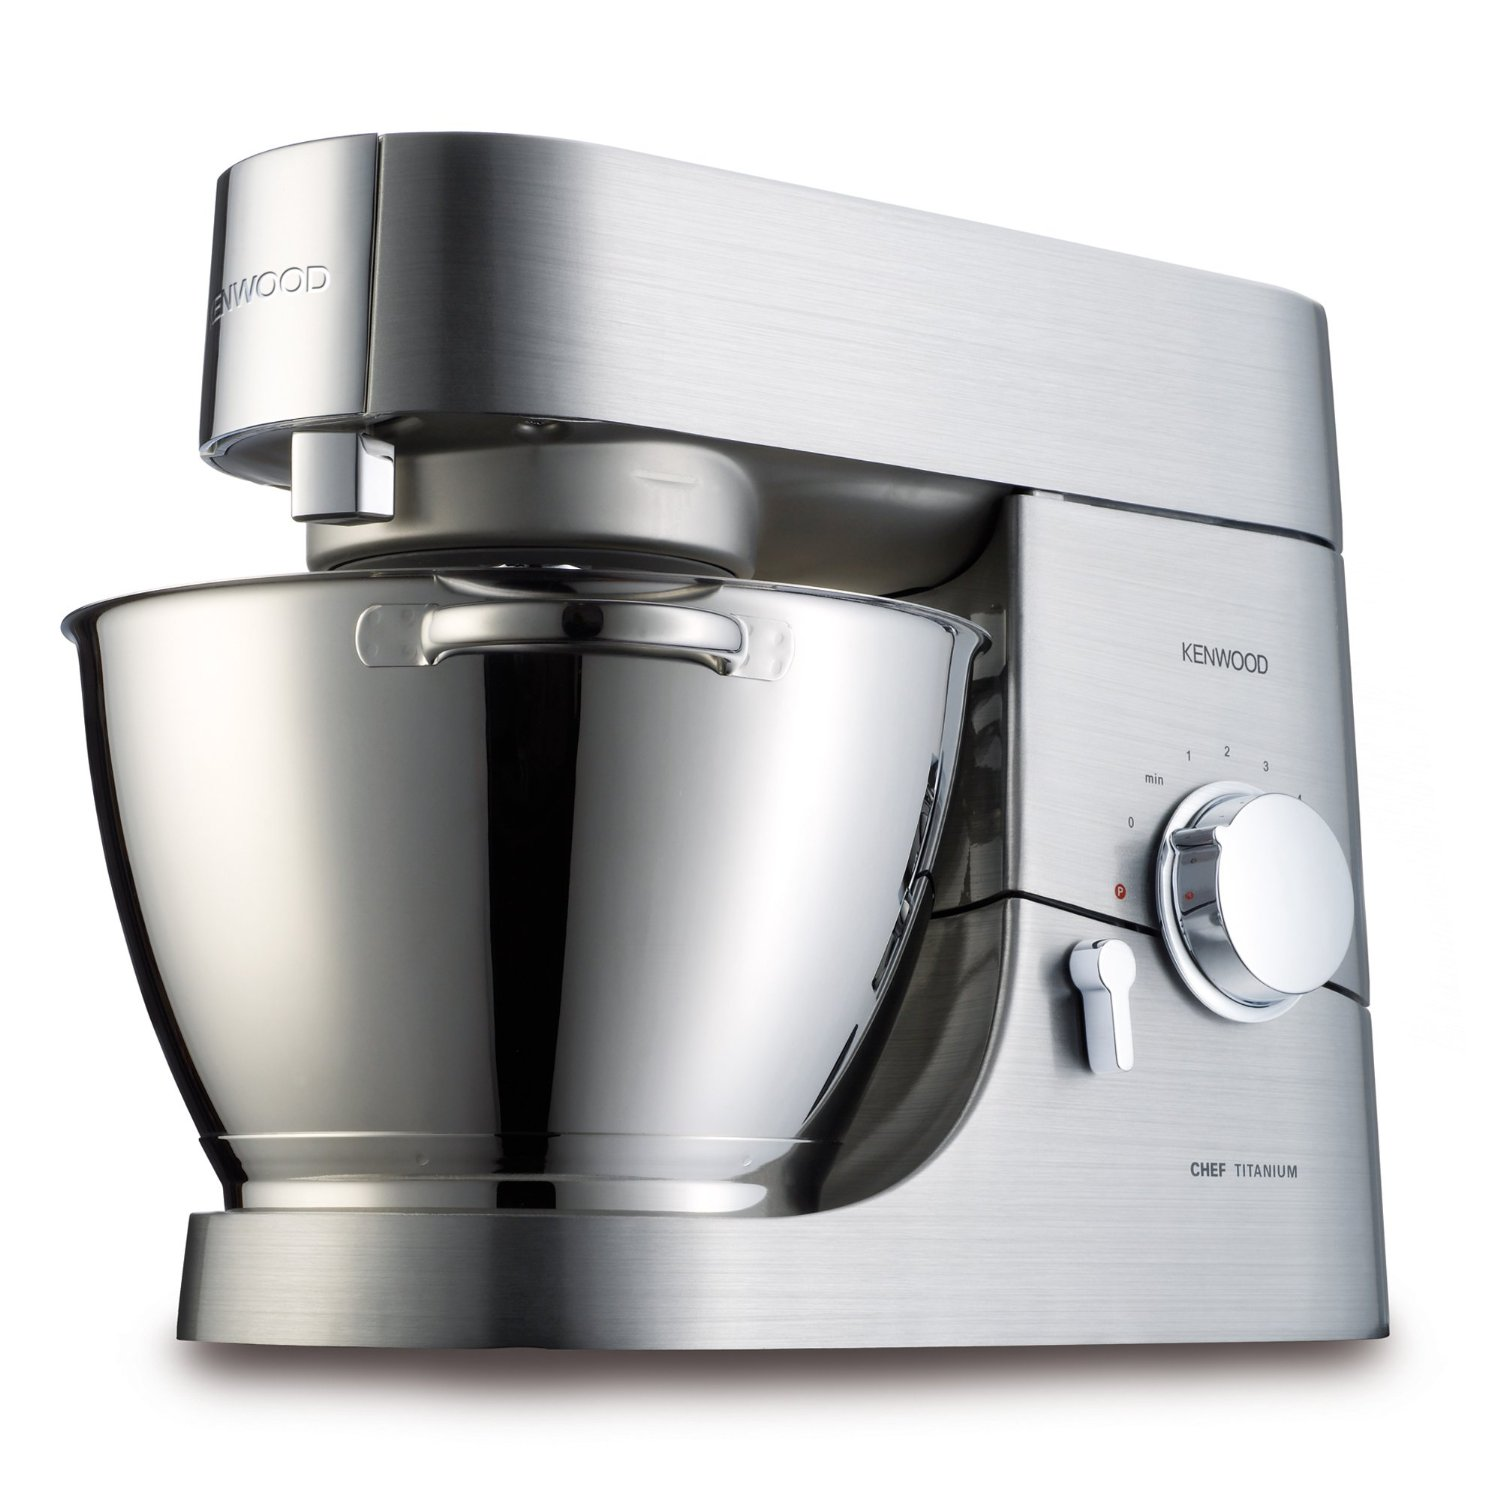 Test du robot de cuisine multi fonction kenwood kmc050 - Kitchenaid ou kenwood 2017 ...